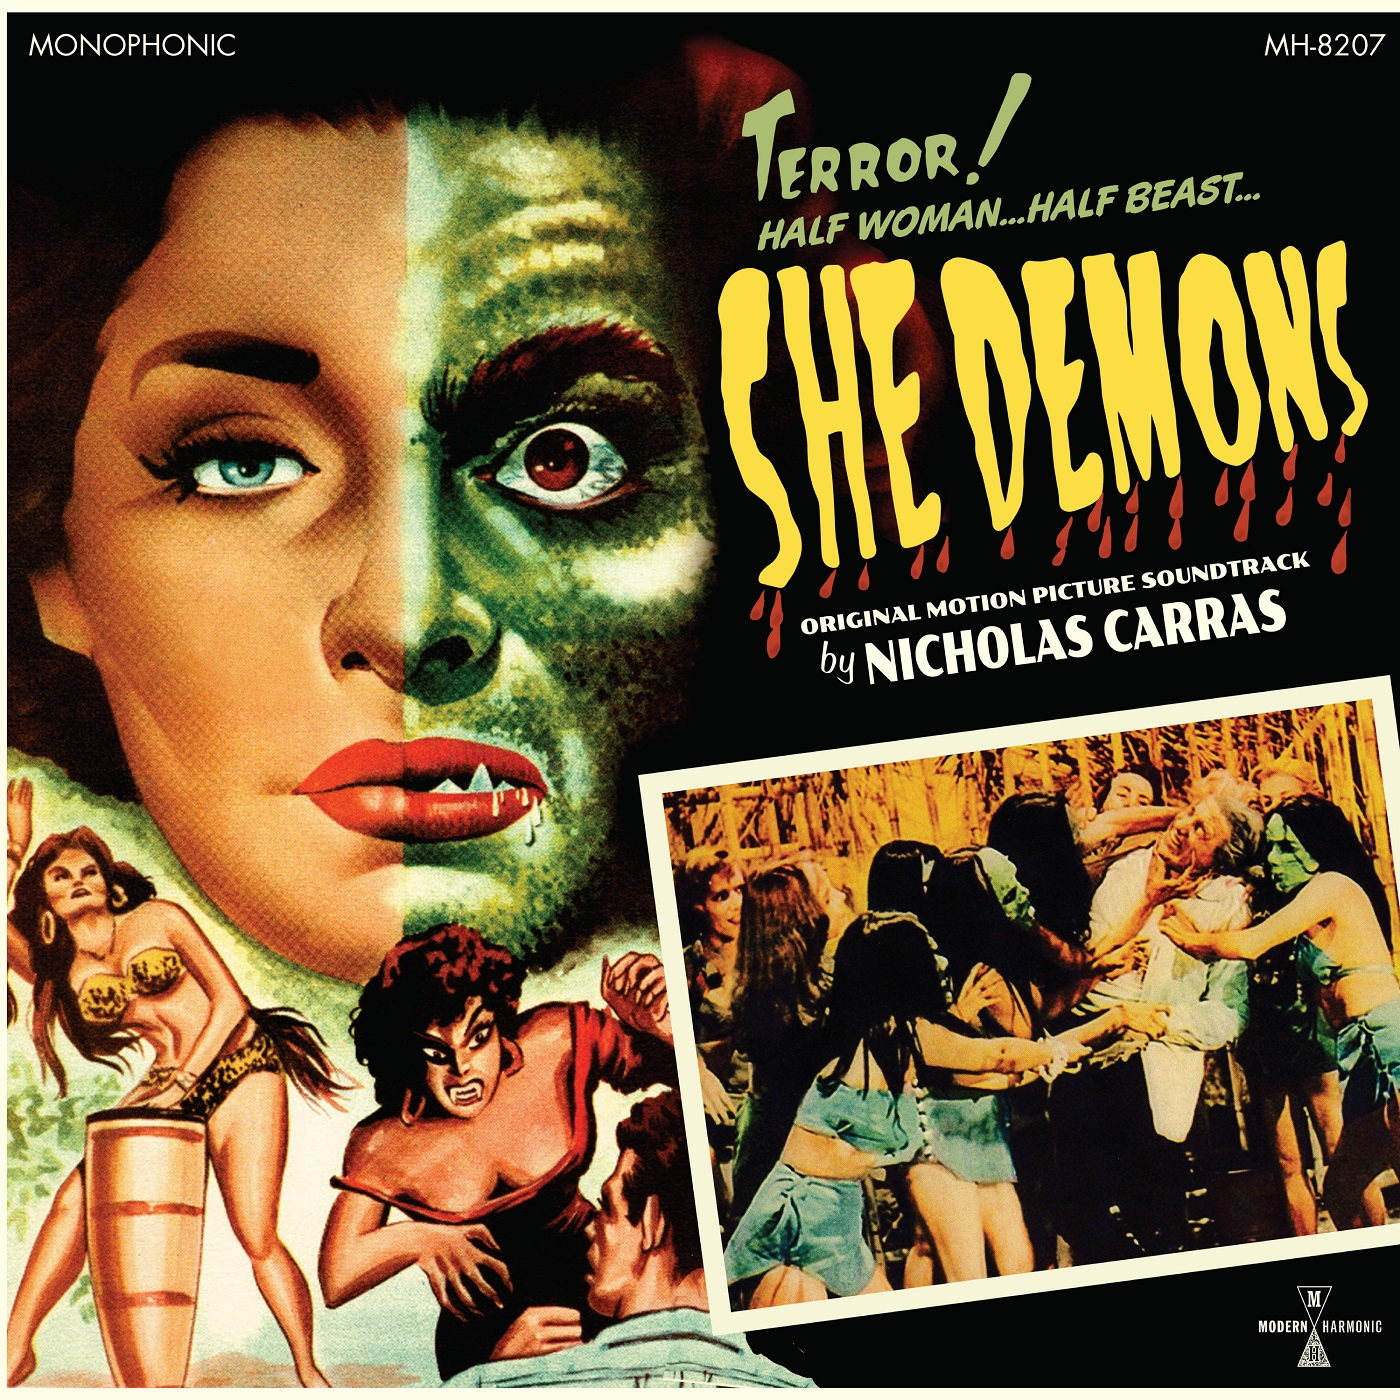 Nicholas Carras - She Demons - Product Shot